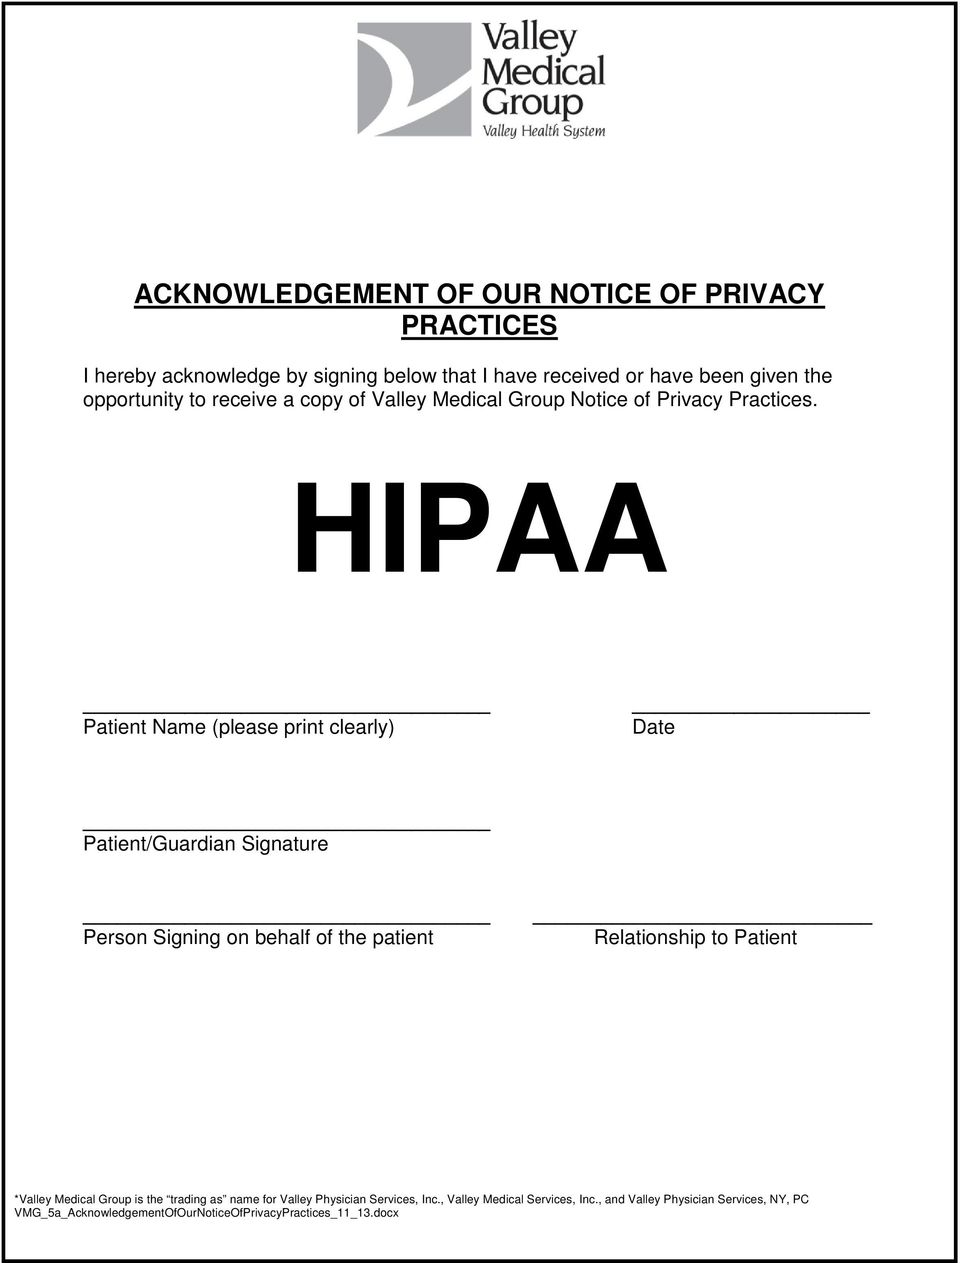 HIPAA Patient Name (please print clearly) Date Patient/Guardian Signature Person Signing on behalf of the patient Relationship to Patient